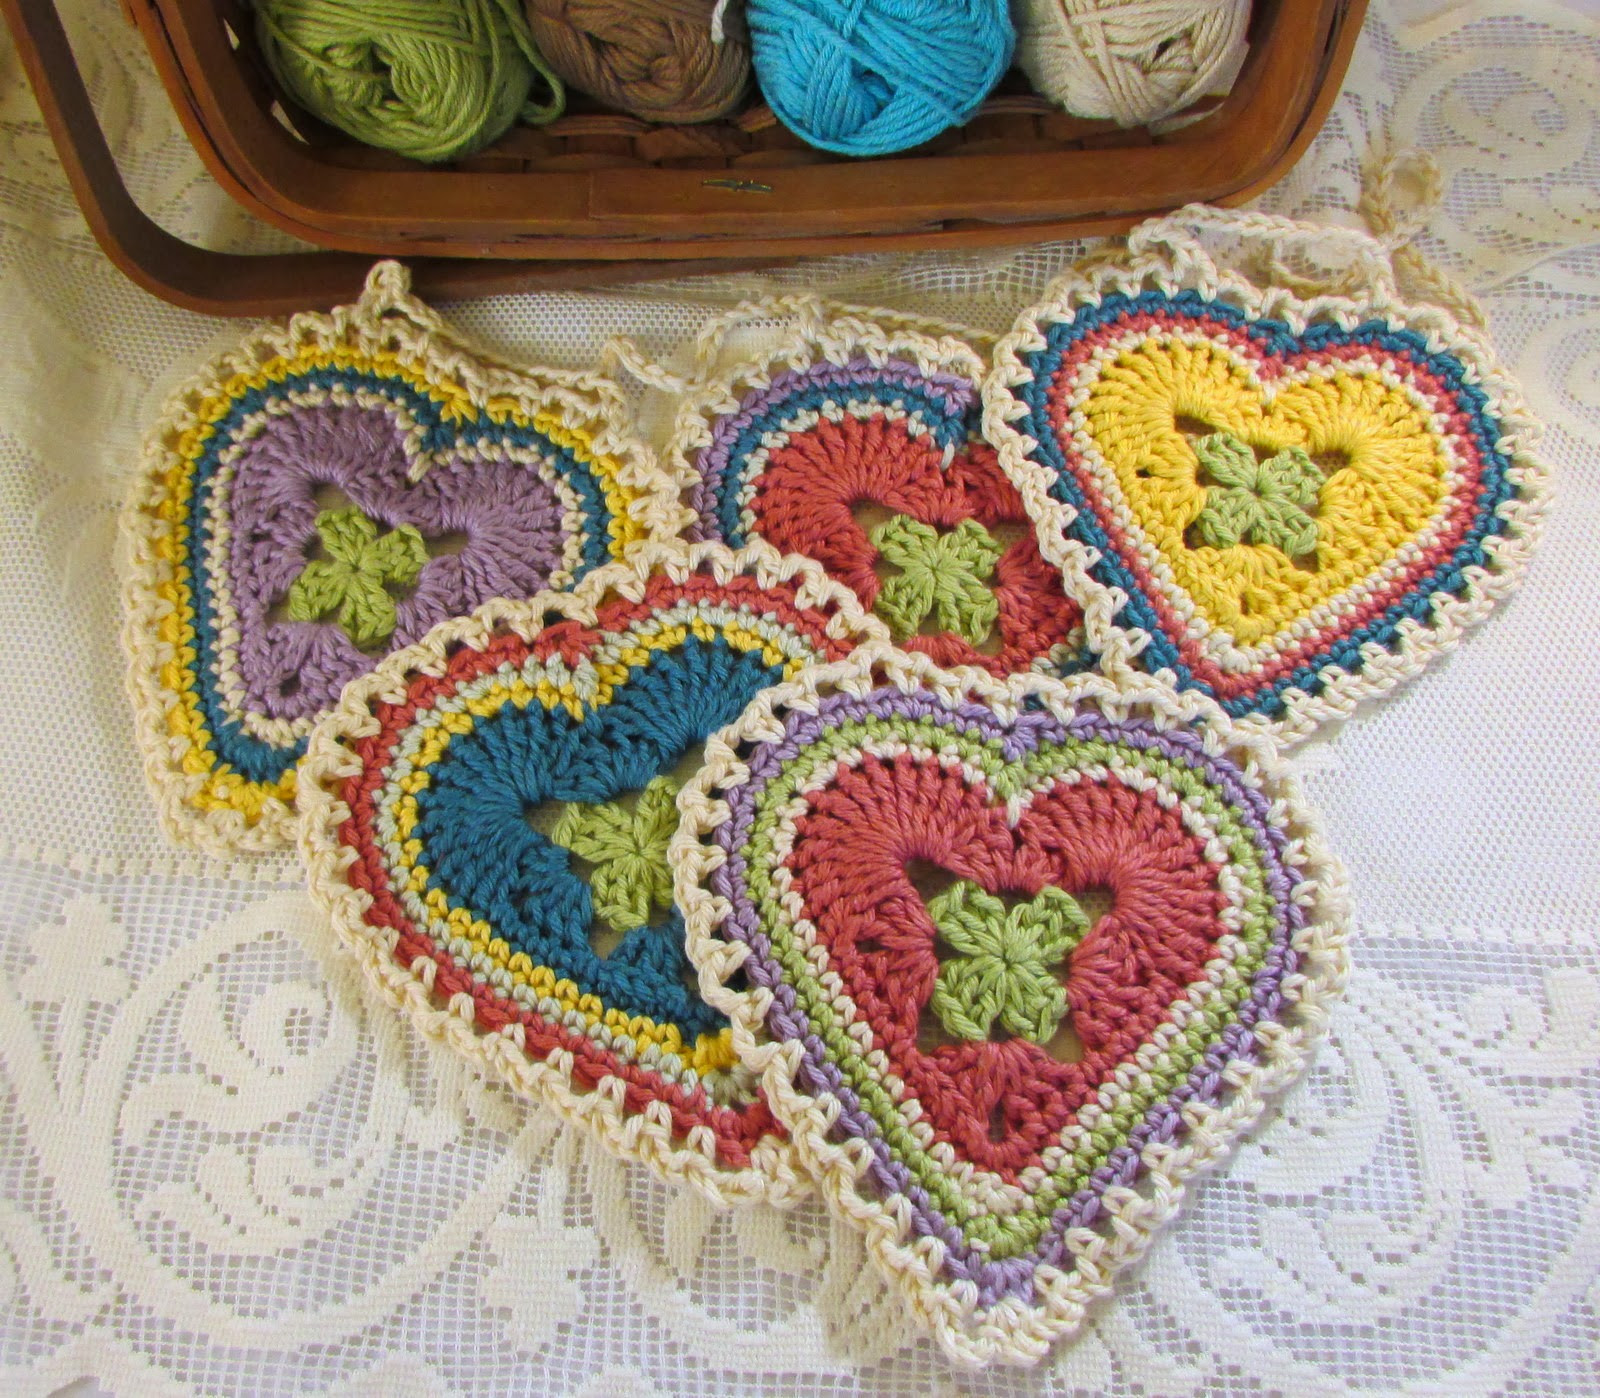 Free Valentine Crochet Patterns Unique Crochet Hearts Free Patterns for Valentine S Day Of Perfect 46 Ideas Free Valentine Crochet Patterns